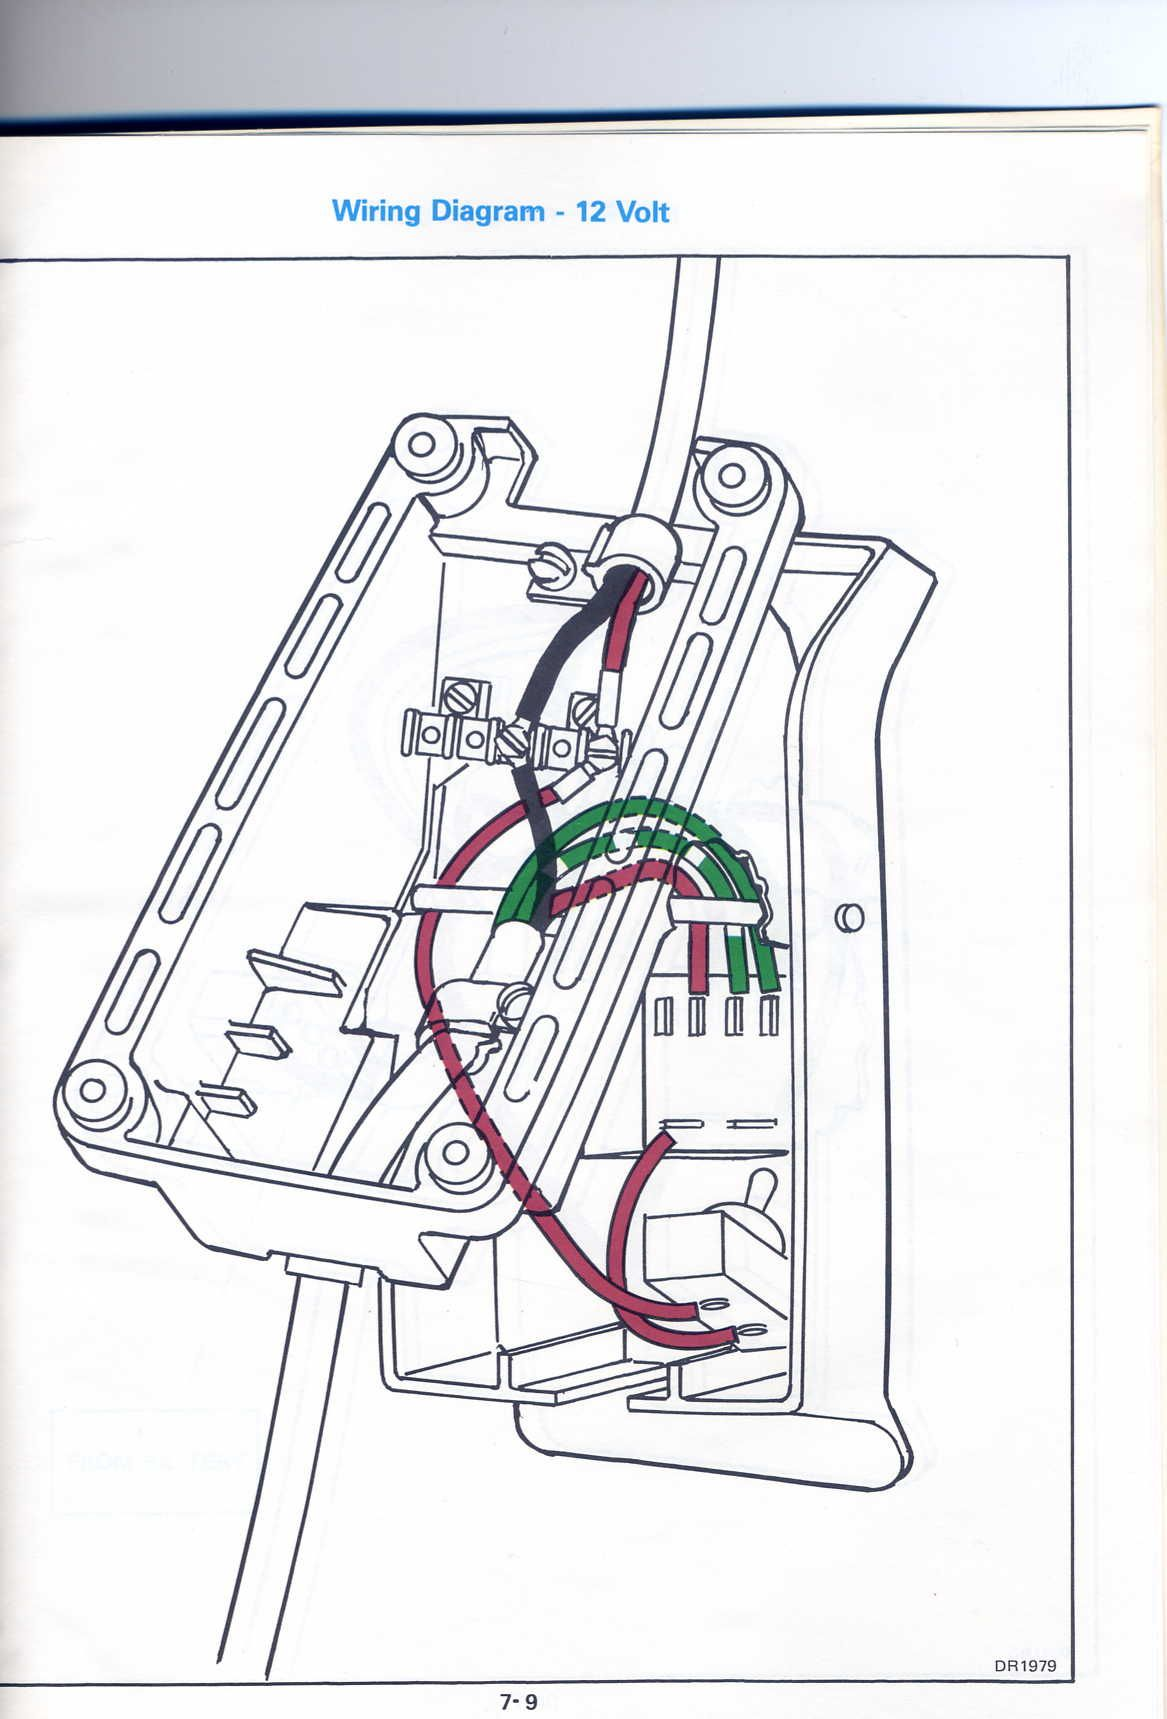 Motorguide Trolling Motor Wiring Diagram: Trying To Repair A Friends